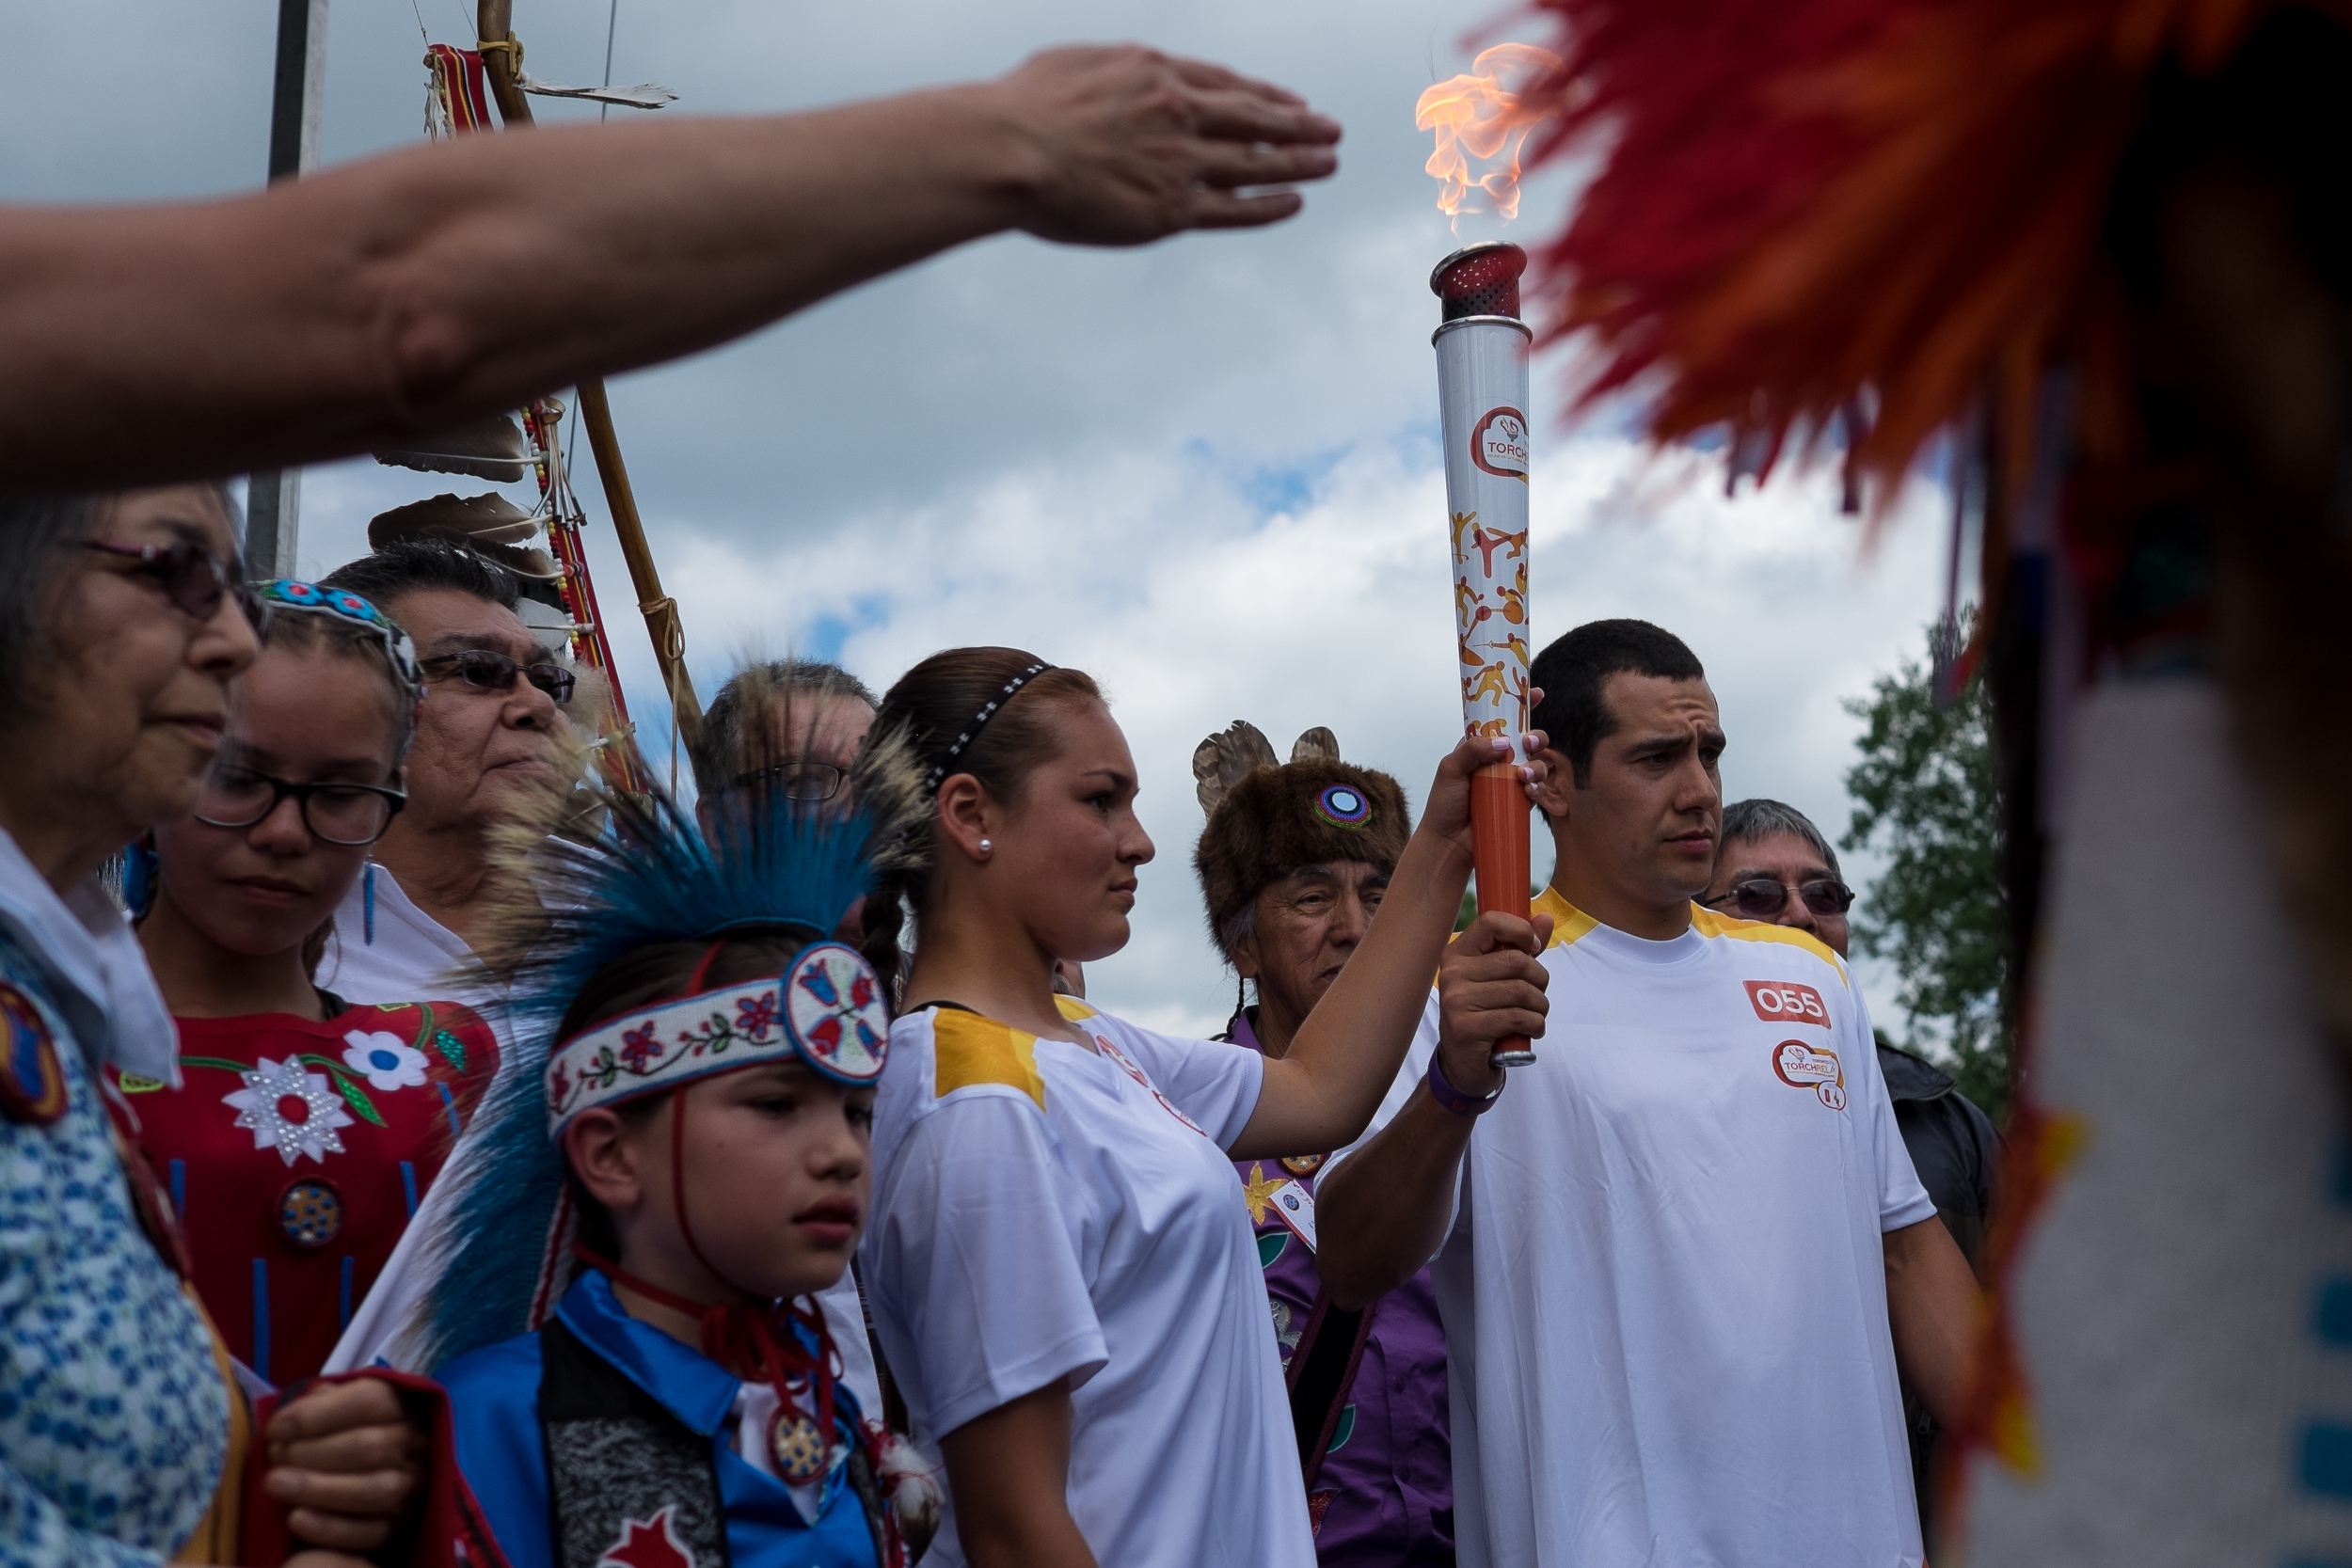 Ryann Laforme (centre) holds the Pan Am torch as during a celebration in New Credit. Charlie Bittern, Bill Chippeway, Charlie Nelson and Bill Merasty stand behind her.